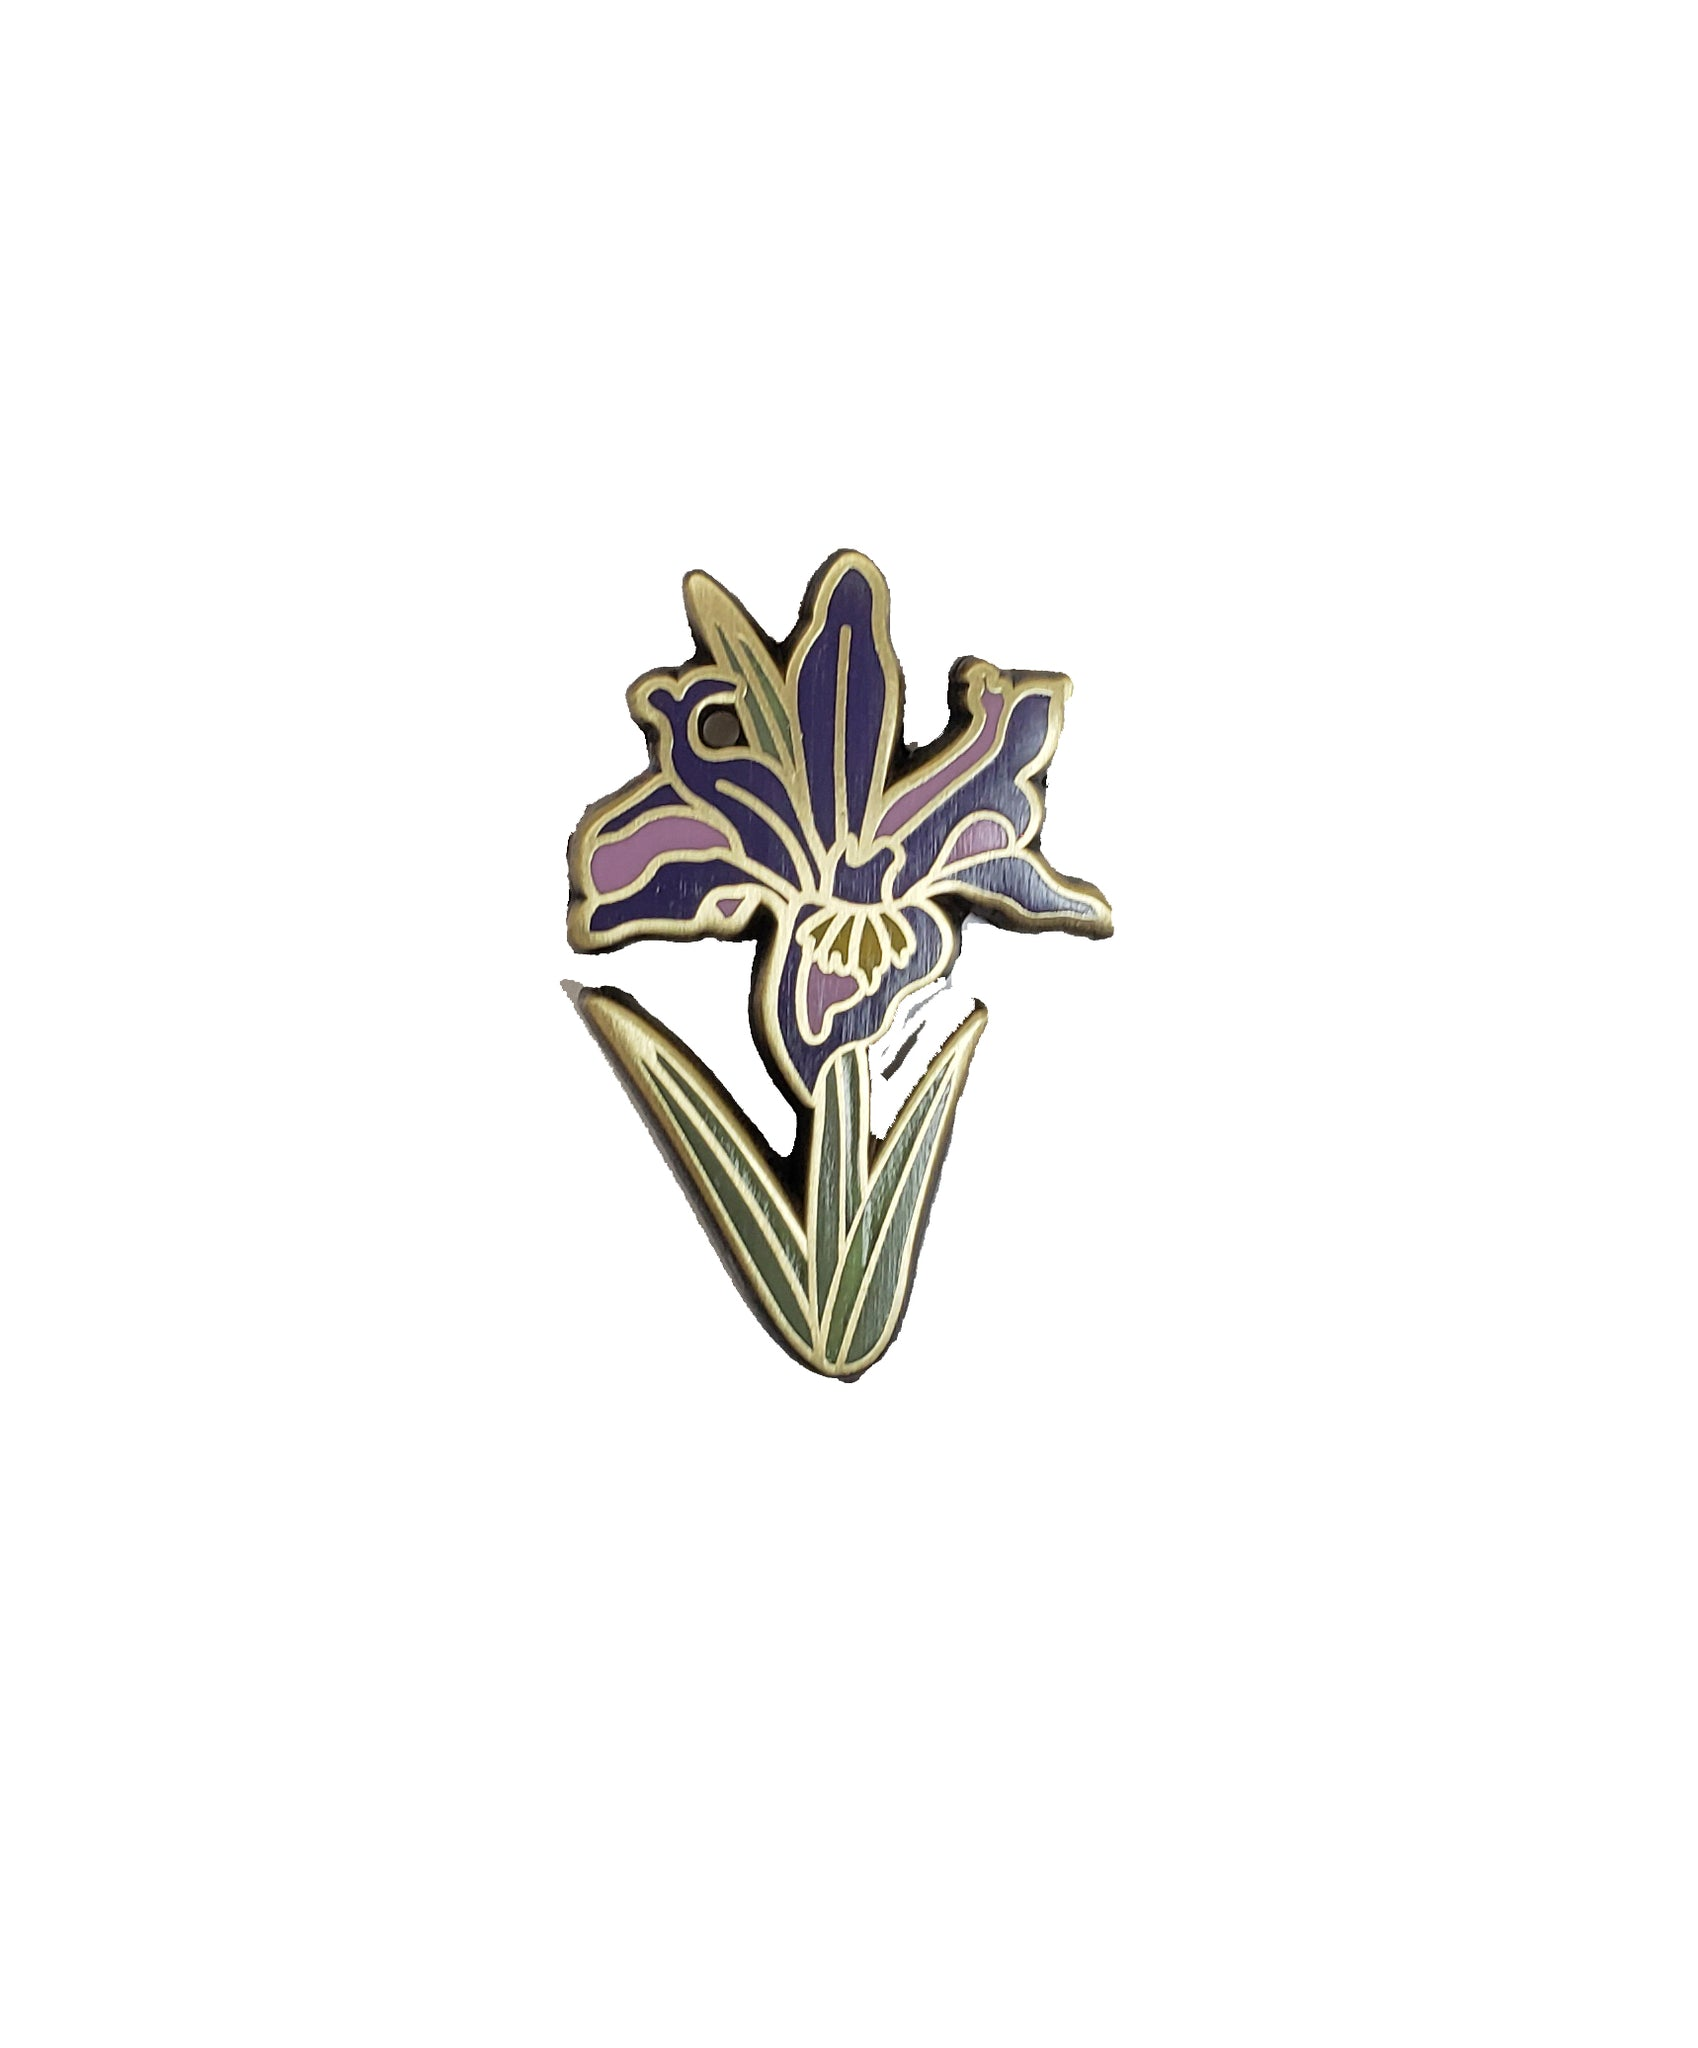 Louisiana Iris Enamel Pin